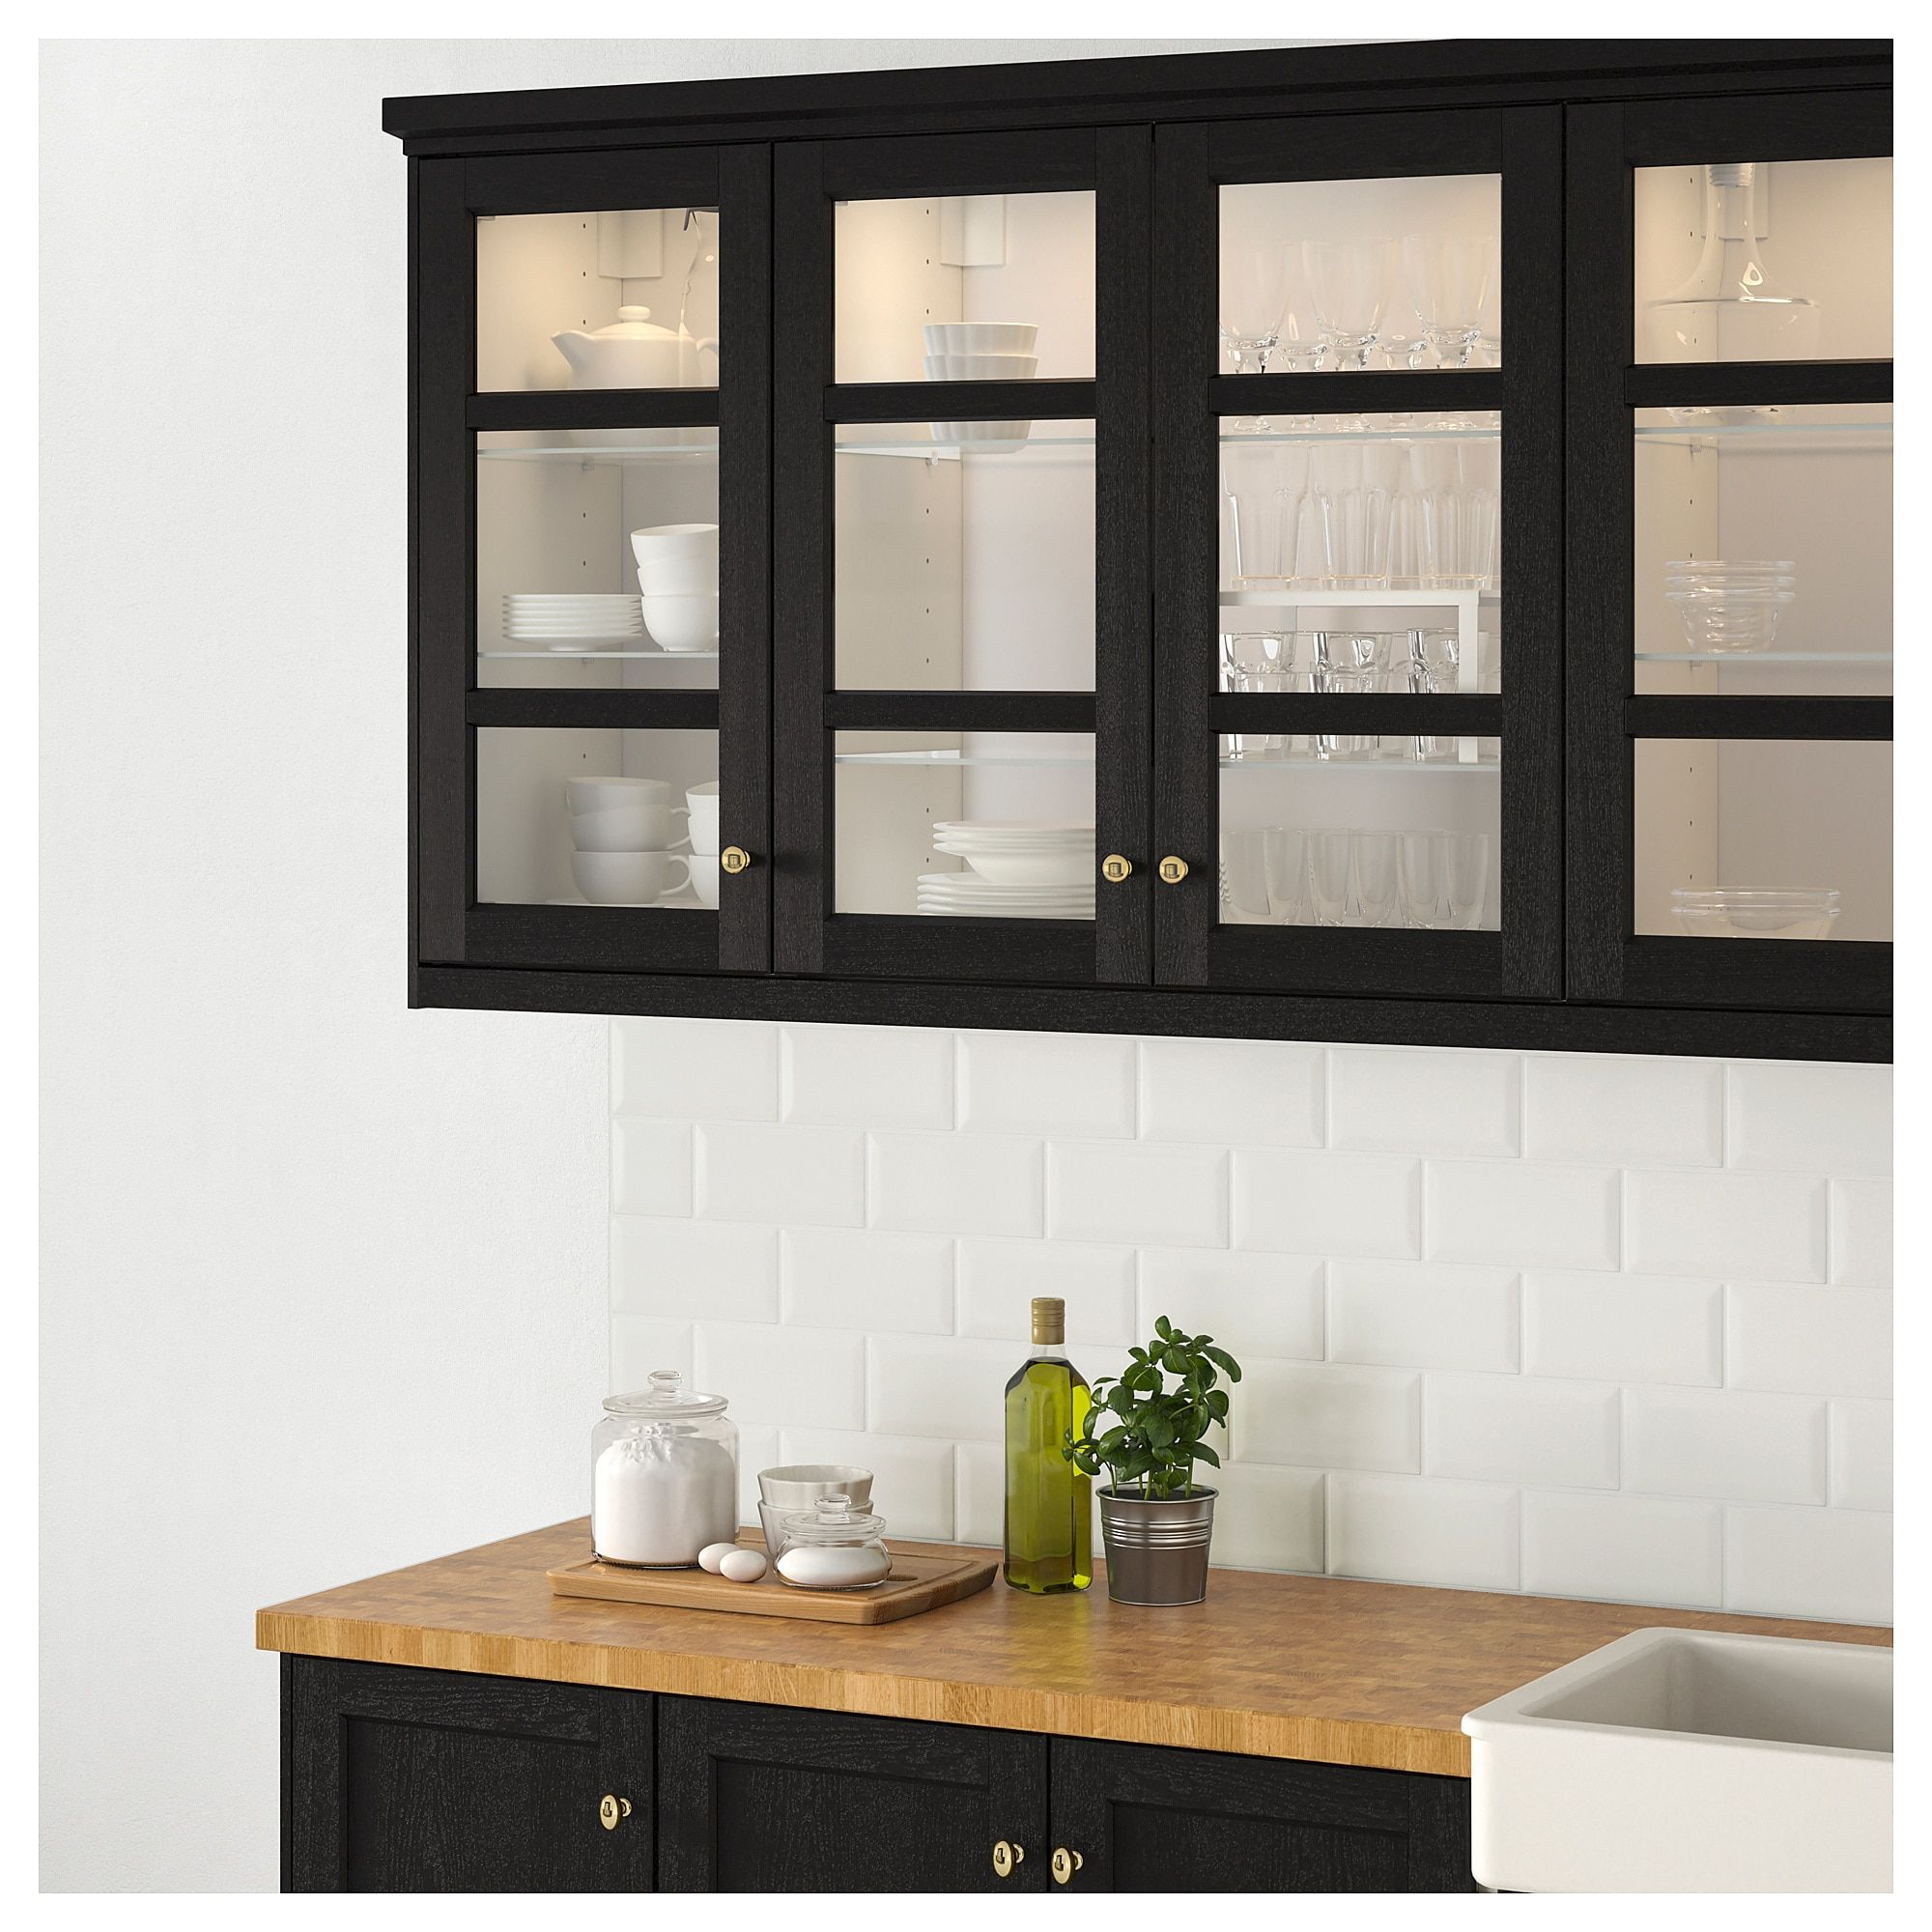 Best Ikea Lerhyttan Glass Door Black Stained In 2020 New 400 x 300